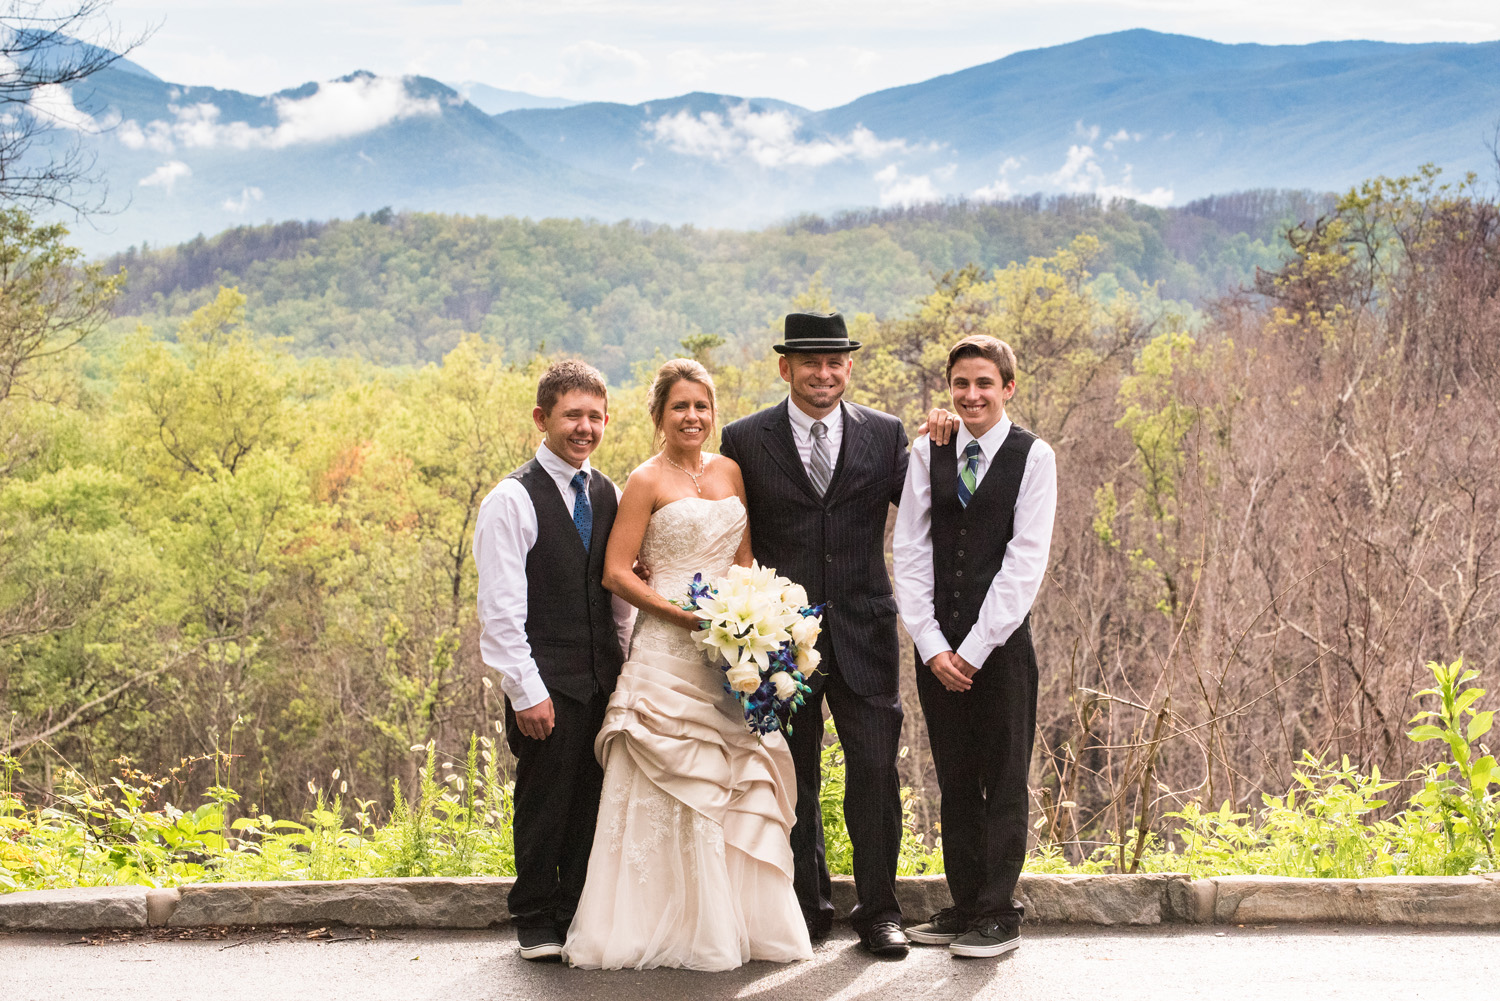 Bride & Groom with kids with Smokies in the background.